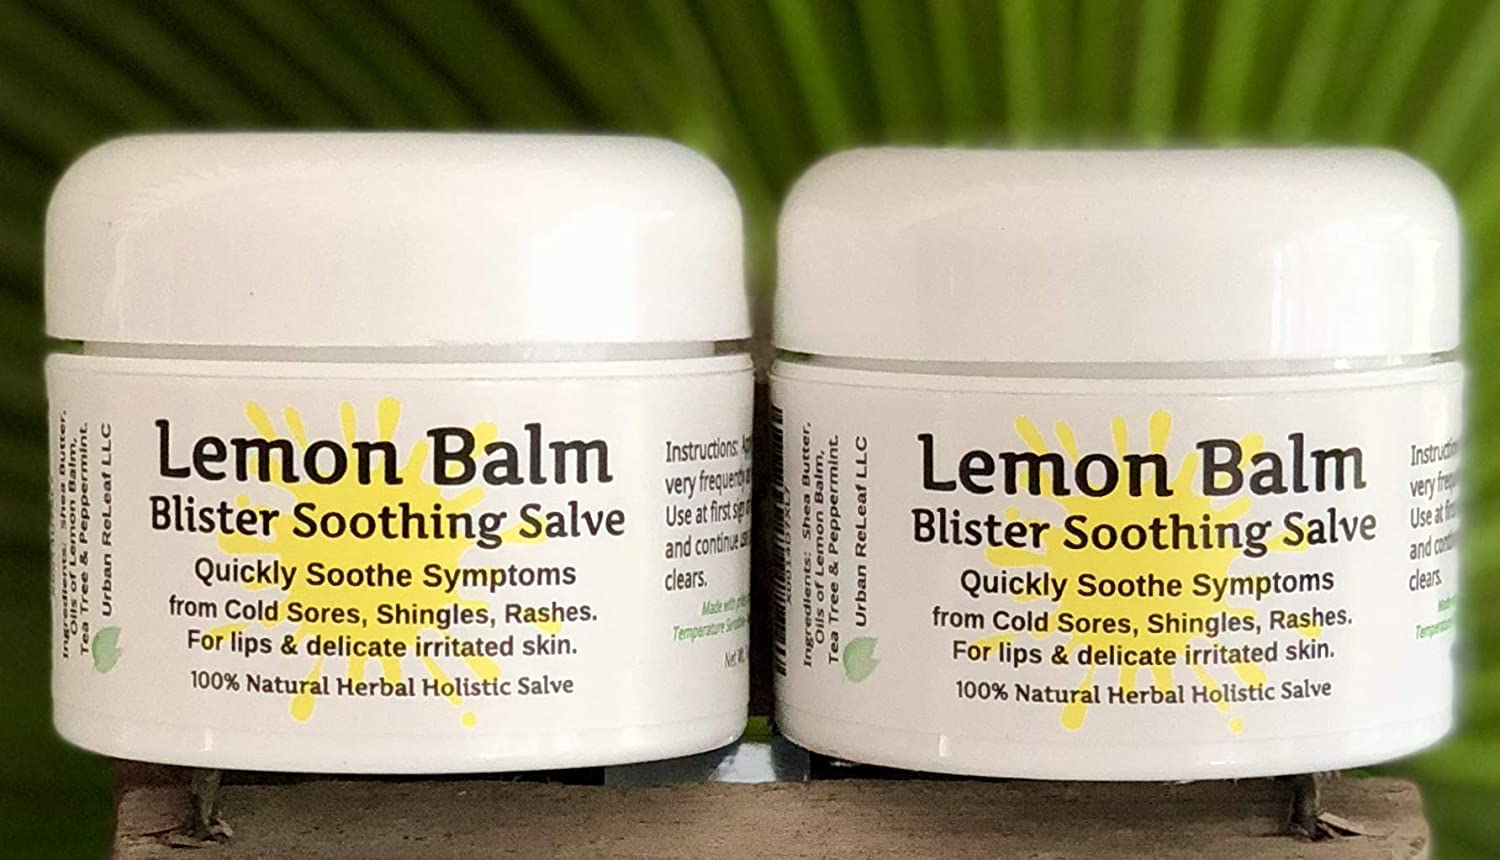 """Urban ReLeaf Lemon Balm Cold Sore & Shingles Salve! 1 Oz, Quickly Soothe Blisters, Rashes, Bumps, Bug Bites, Chicken Pox. Suppress outbreaks. 100% Natural""""Goodbye, Itchy red Bumps!"""" (2)"""